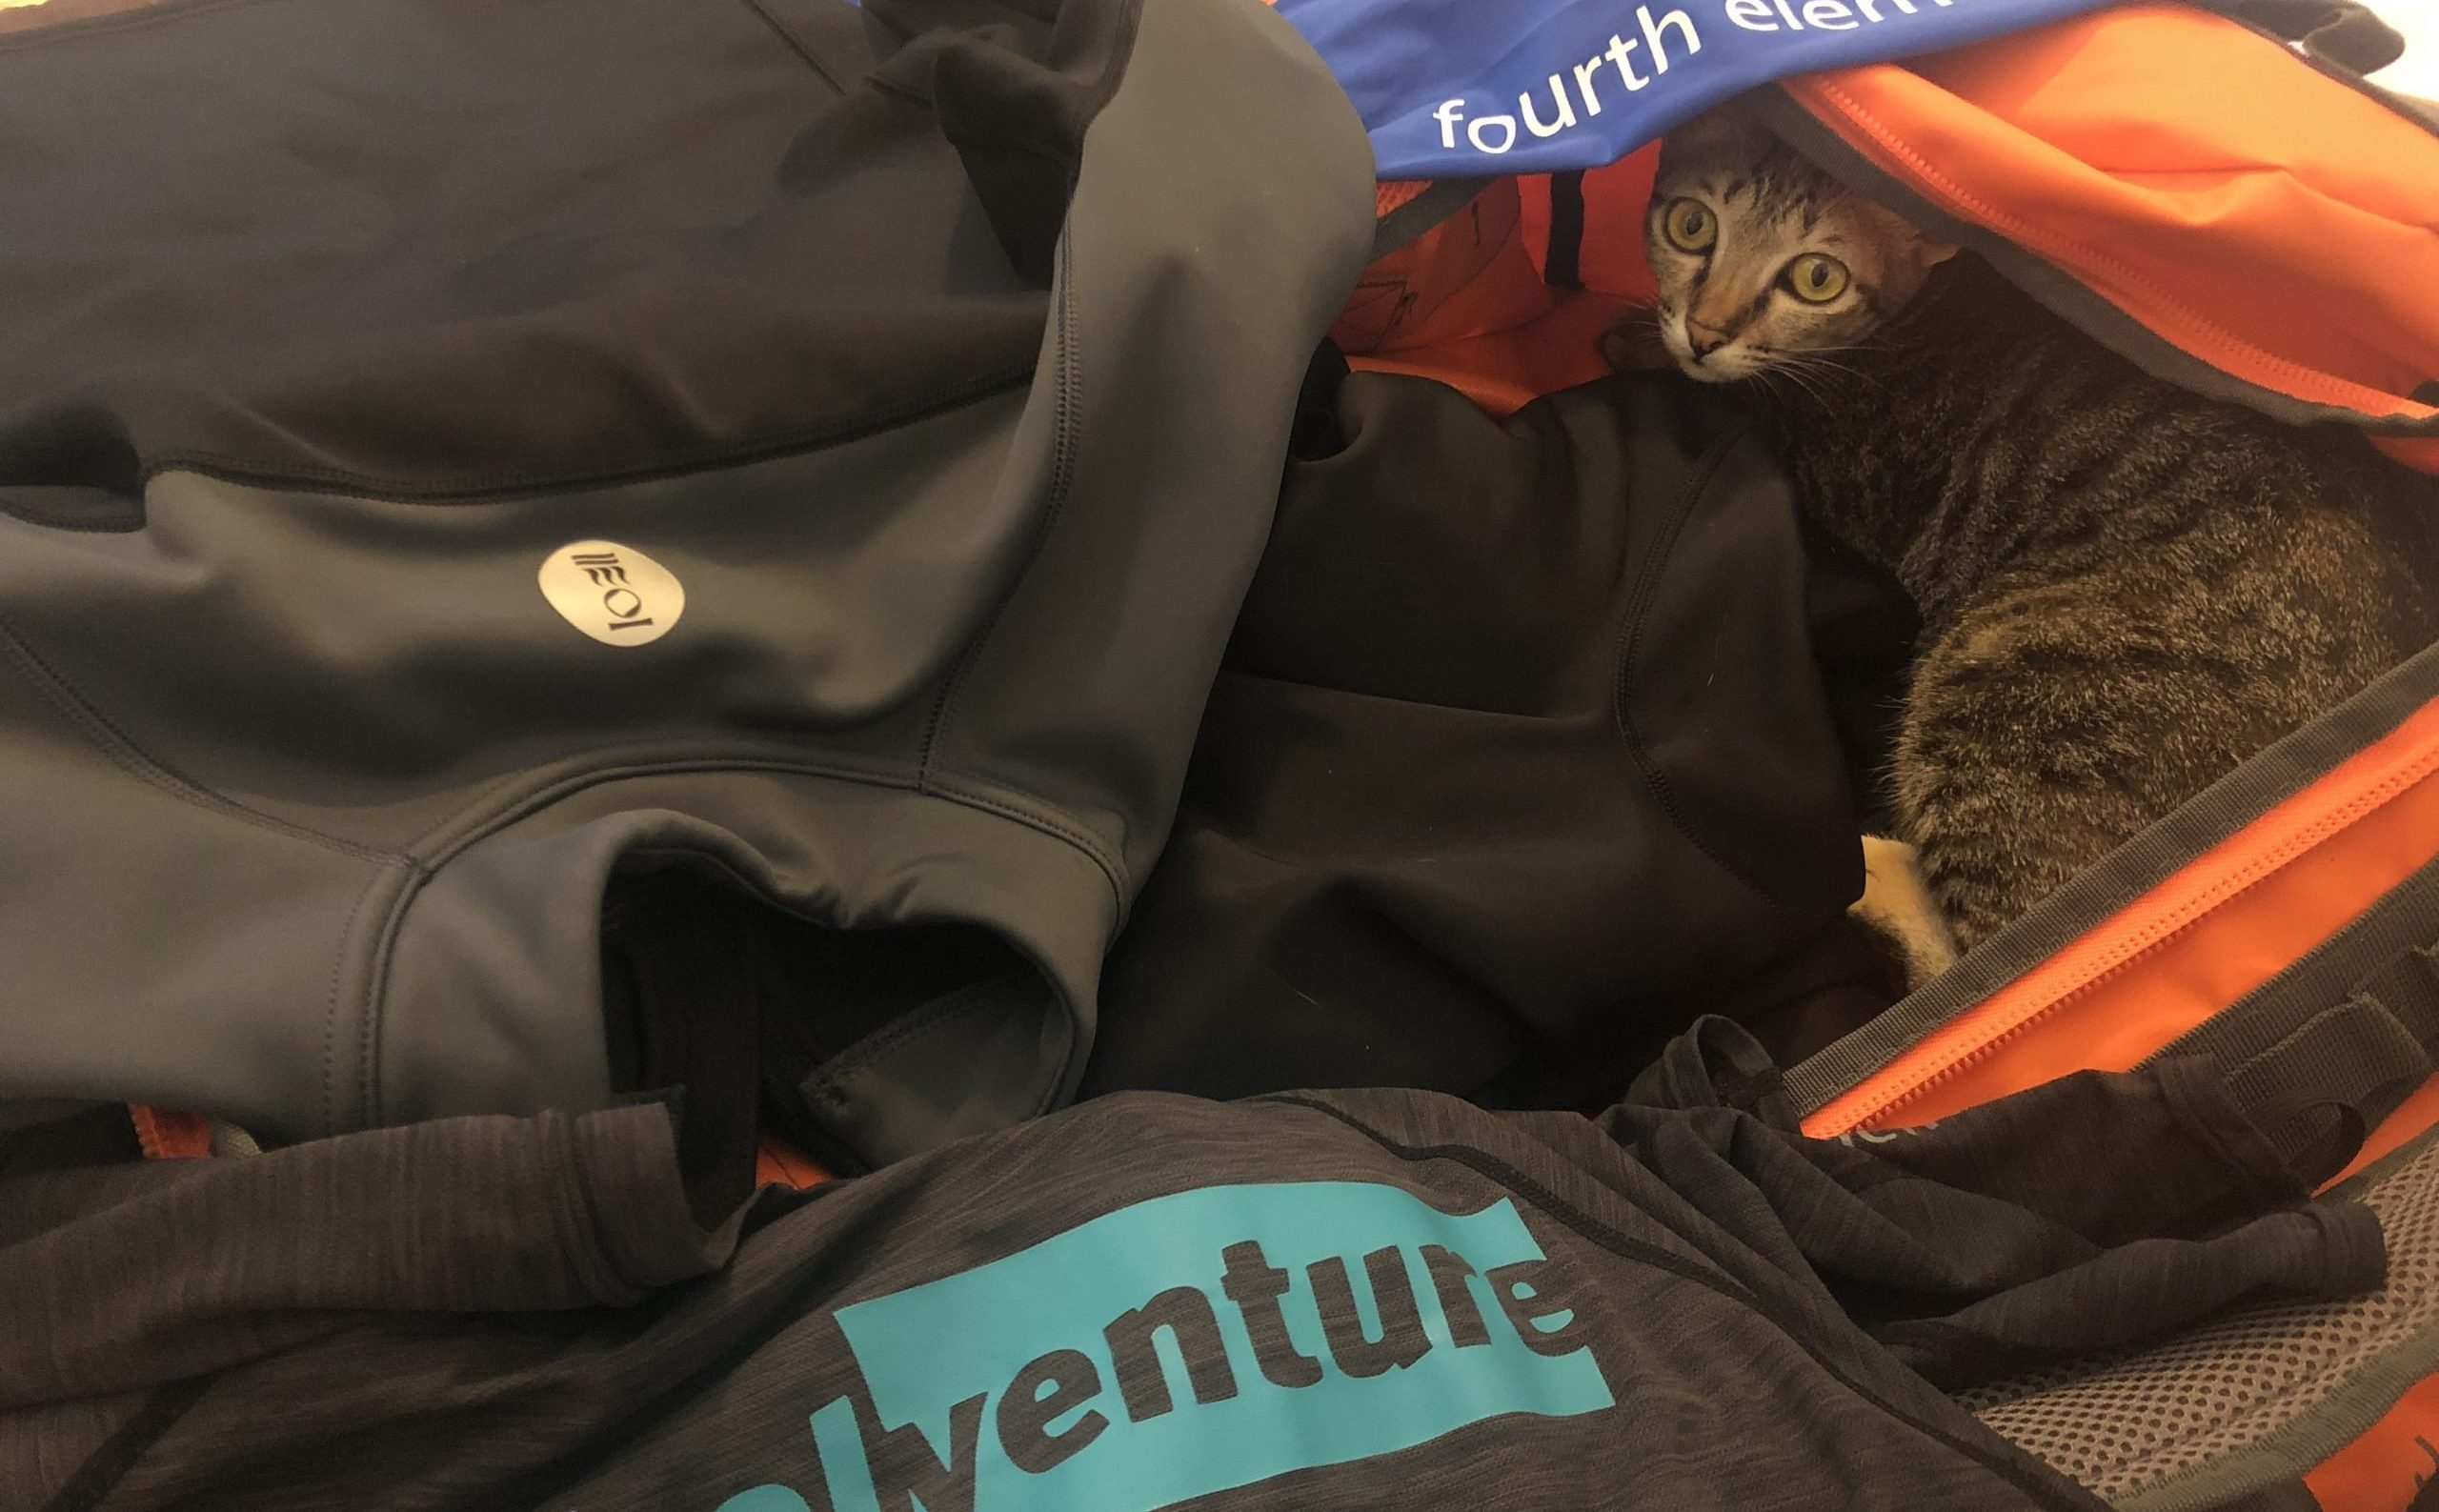 snorkeling gear being packed with cat in the bag